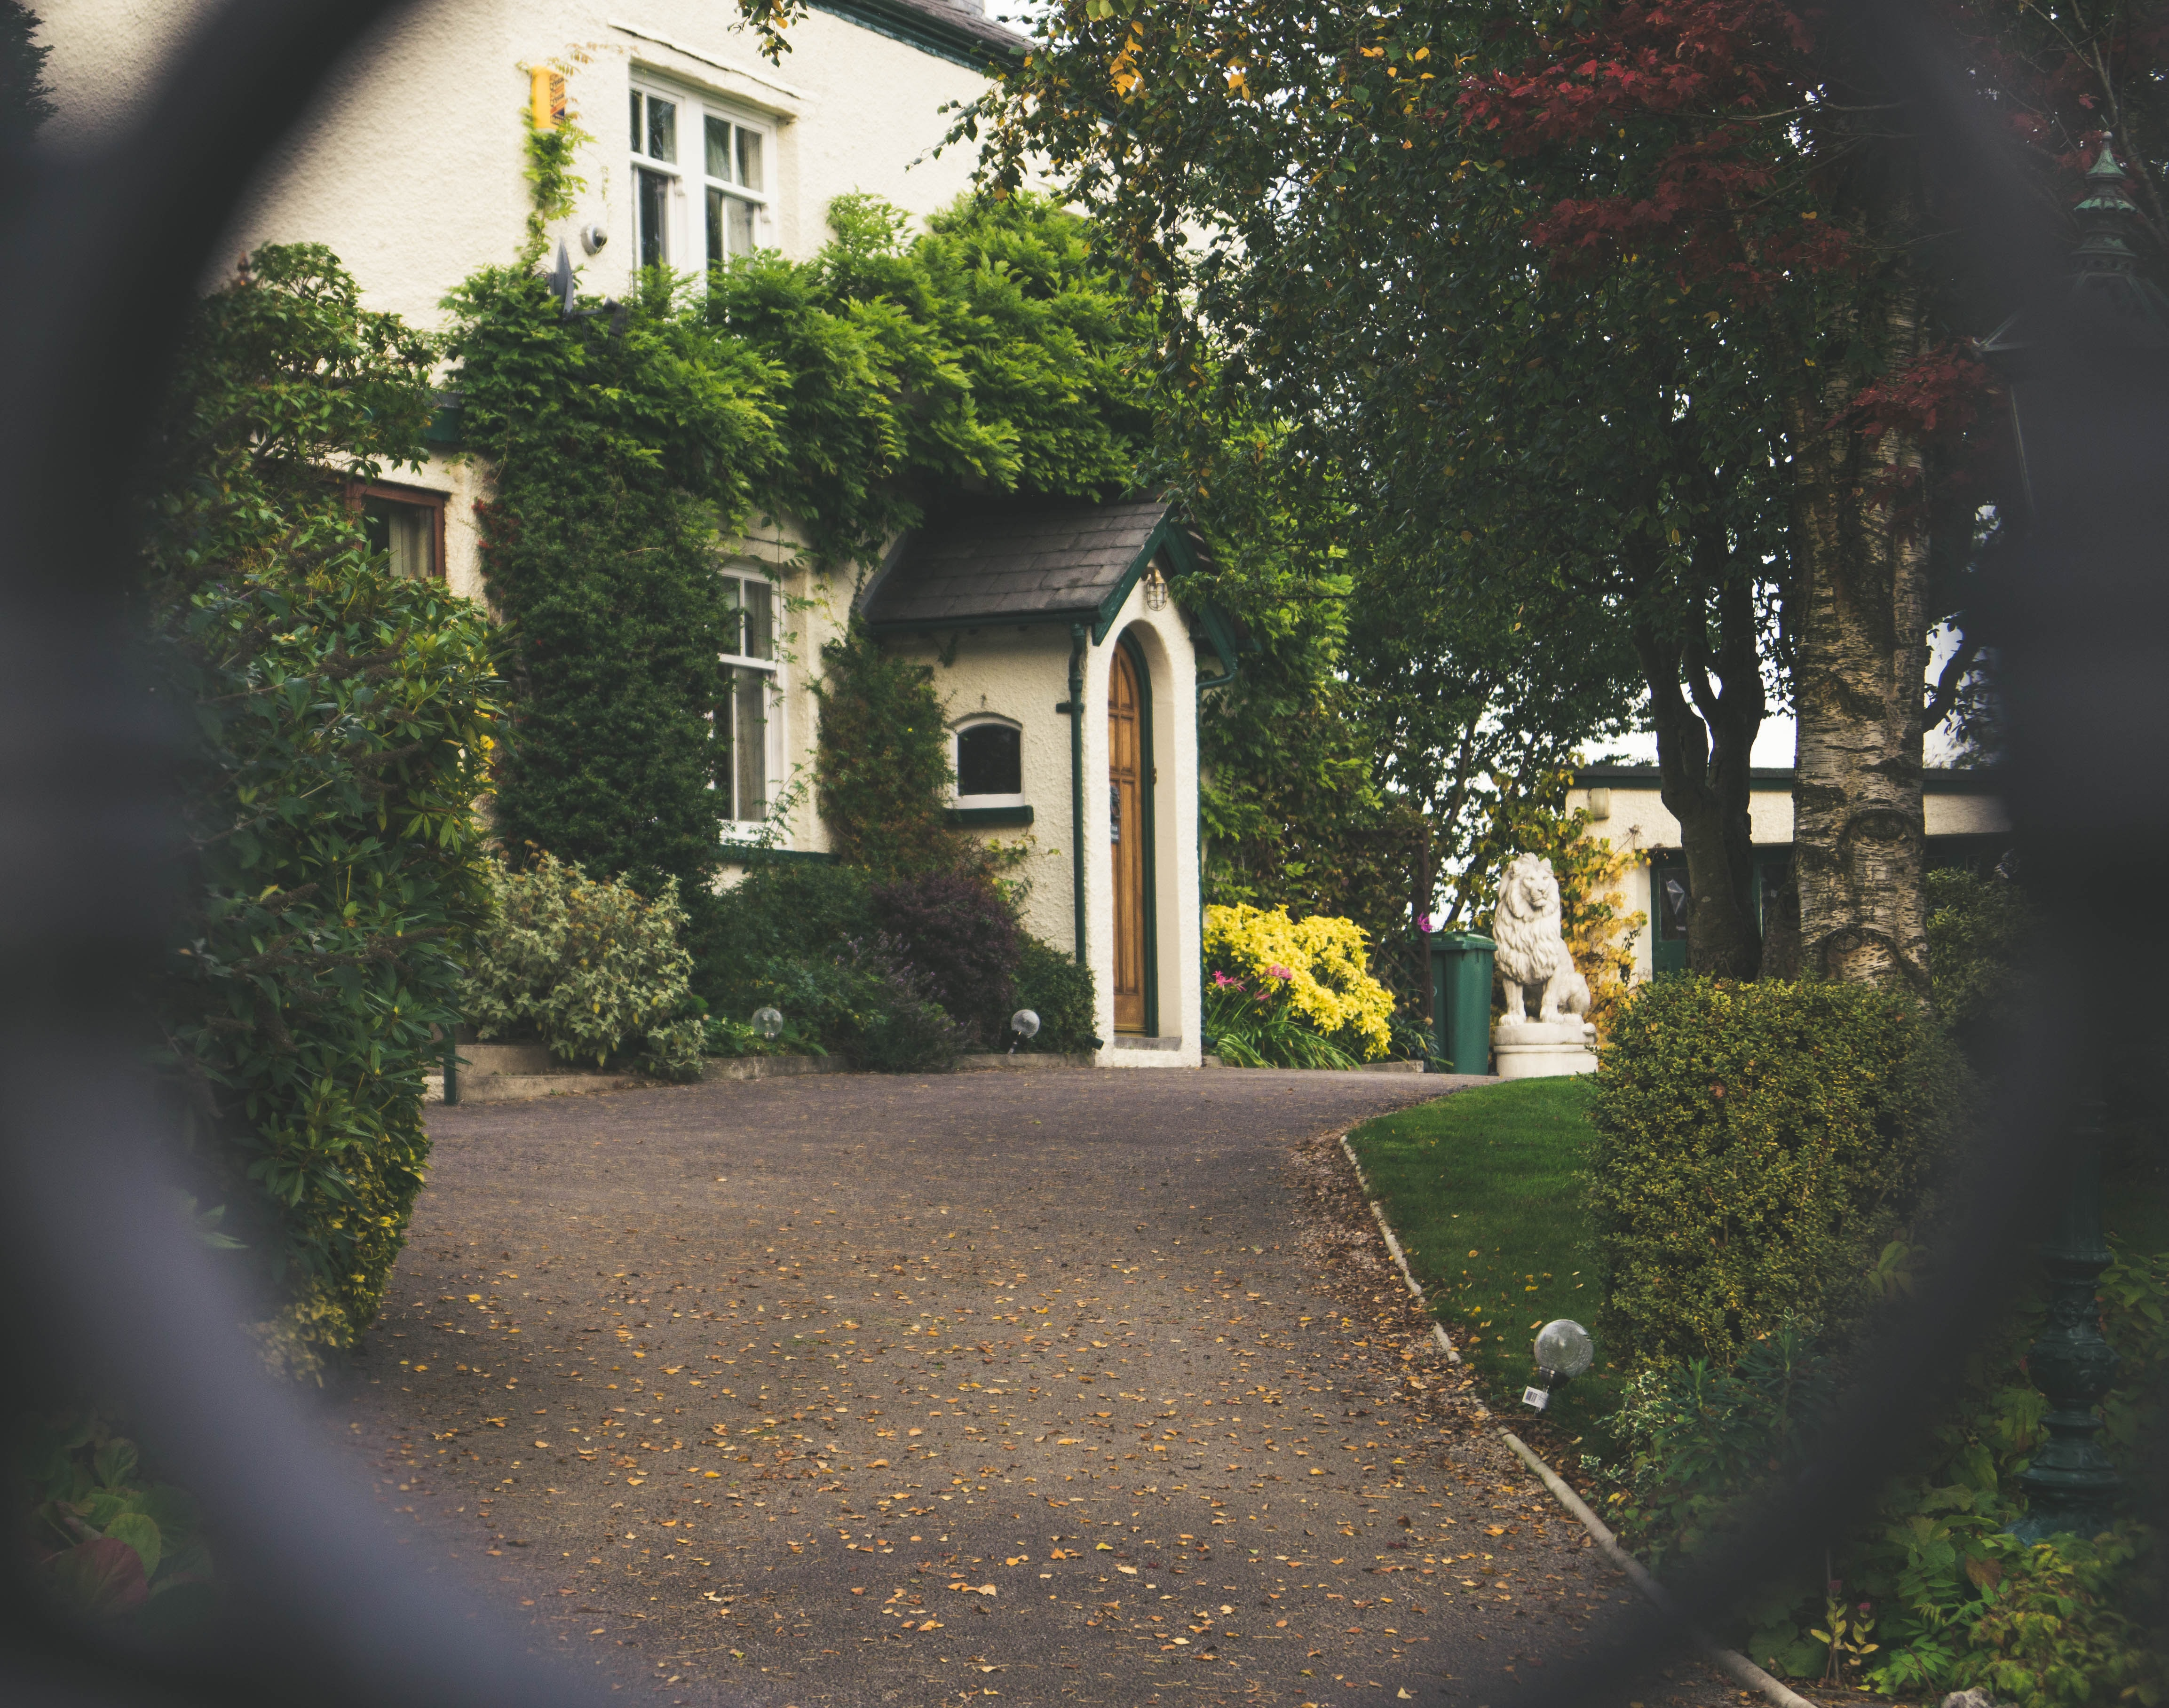 The entrance to a mansion with a beautiful garden seen through the fence